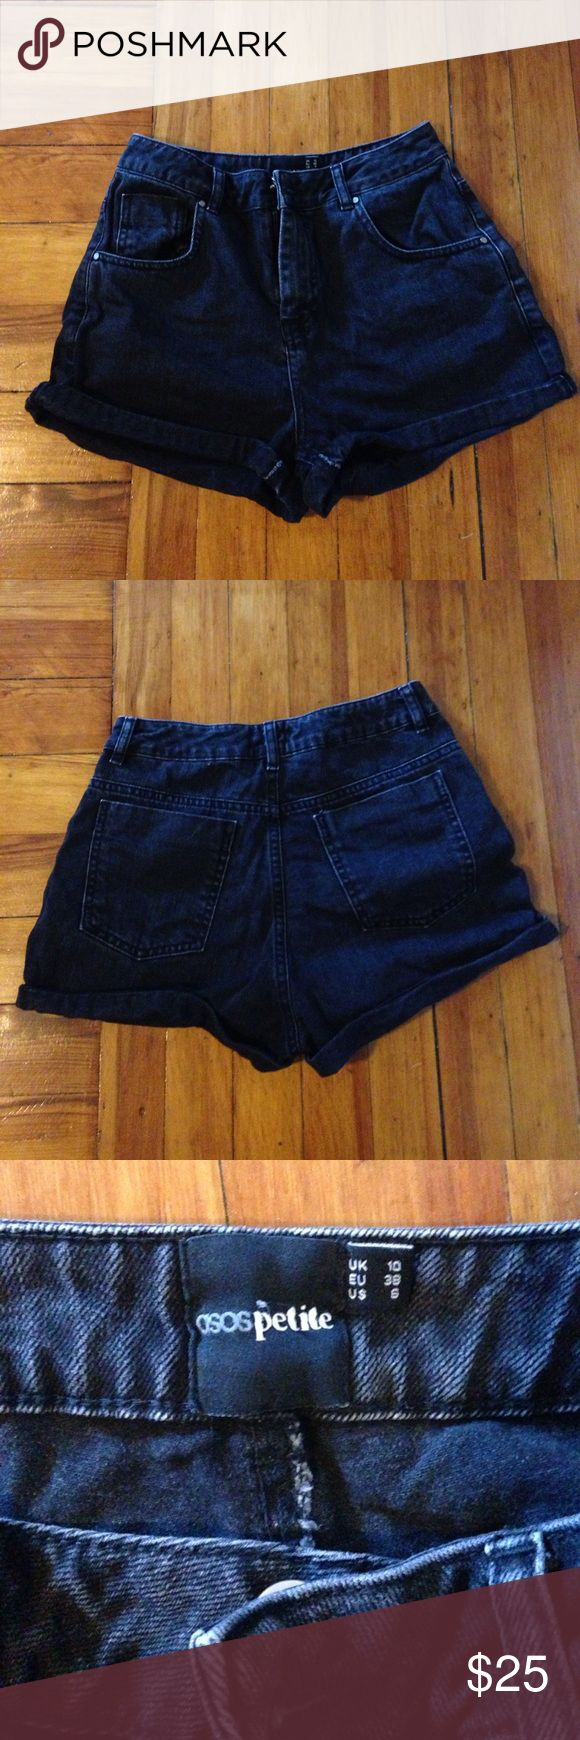 Asos Mom Jean Shorts Asos petite denim high waist Mom shorts. 100% cotton. These shorts are so cute. Only worn once or twice! US size 6. ASOS Petite Shorts Jean Shorts